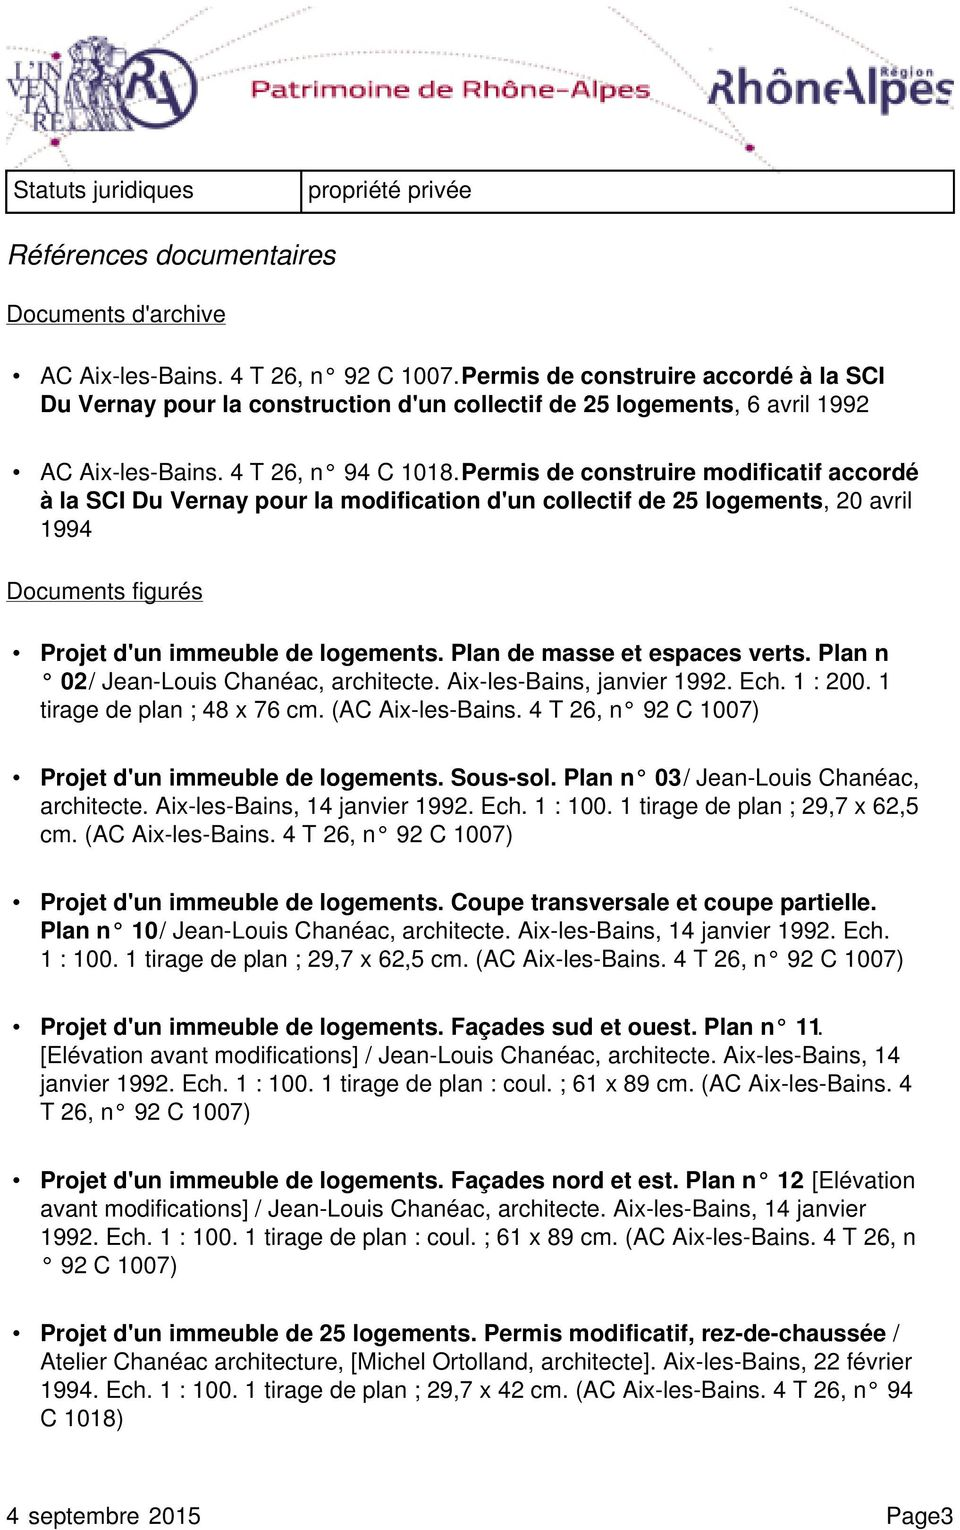 Permis de construire modificatif accordé à la SCI Du Vernay pour la modification d'un collectif de 25 logements, 20 avril 1994 Documents figurés Projet d'un immeuble de logements.